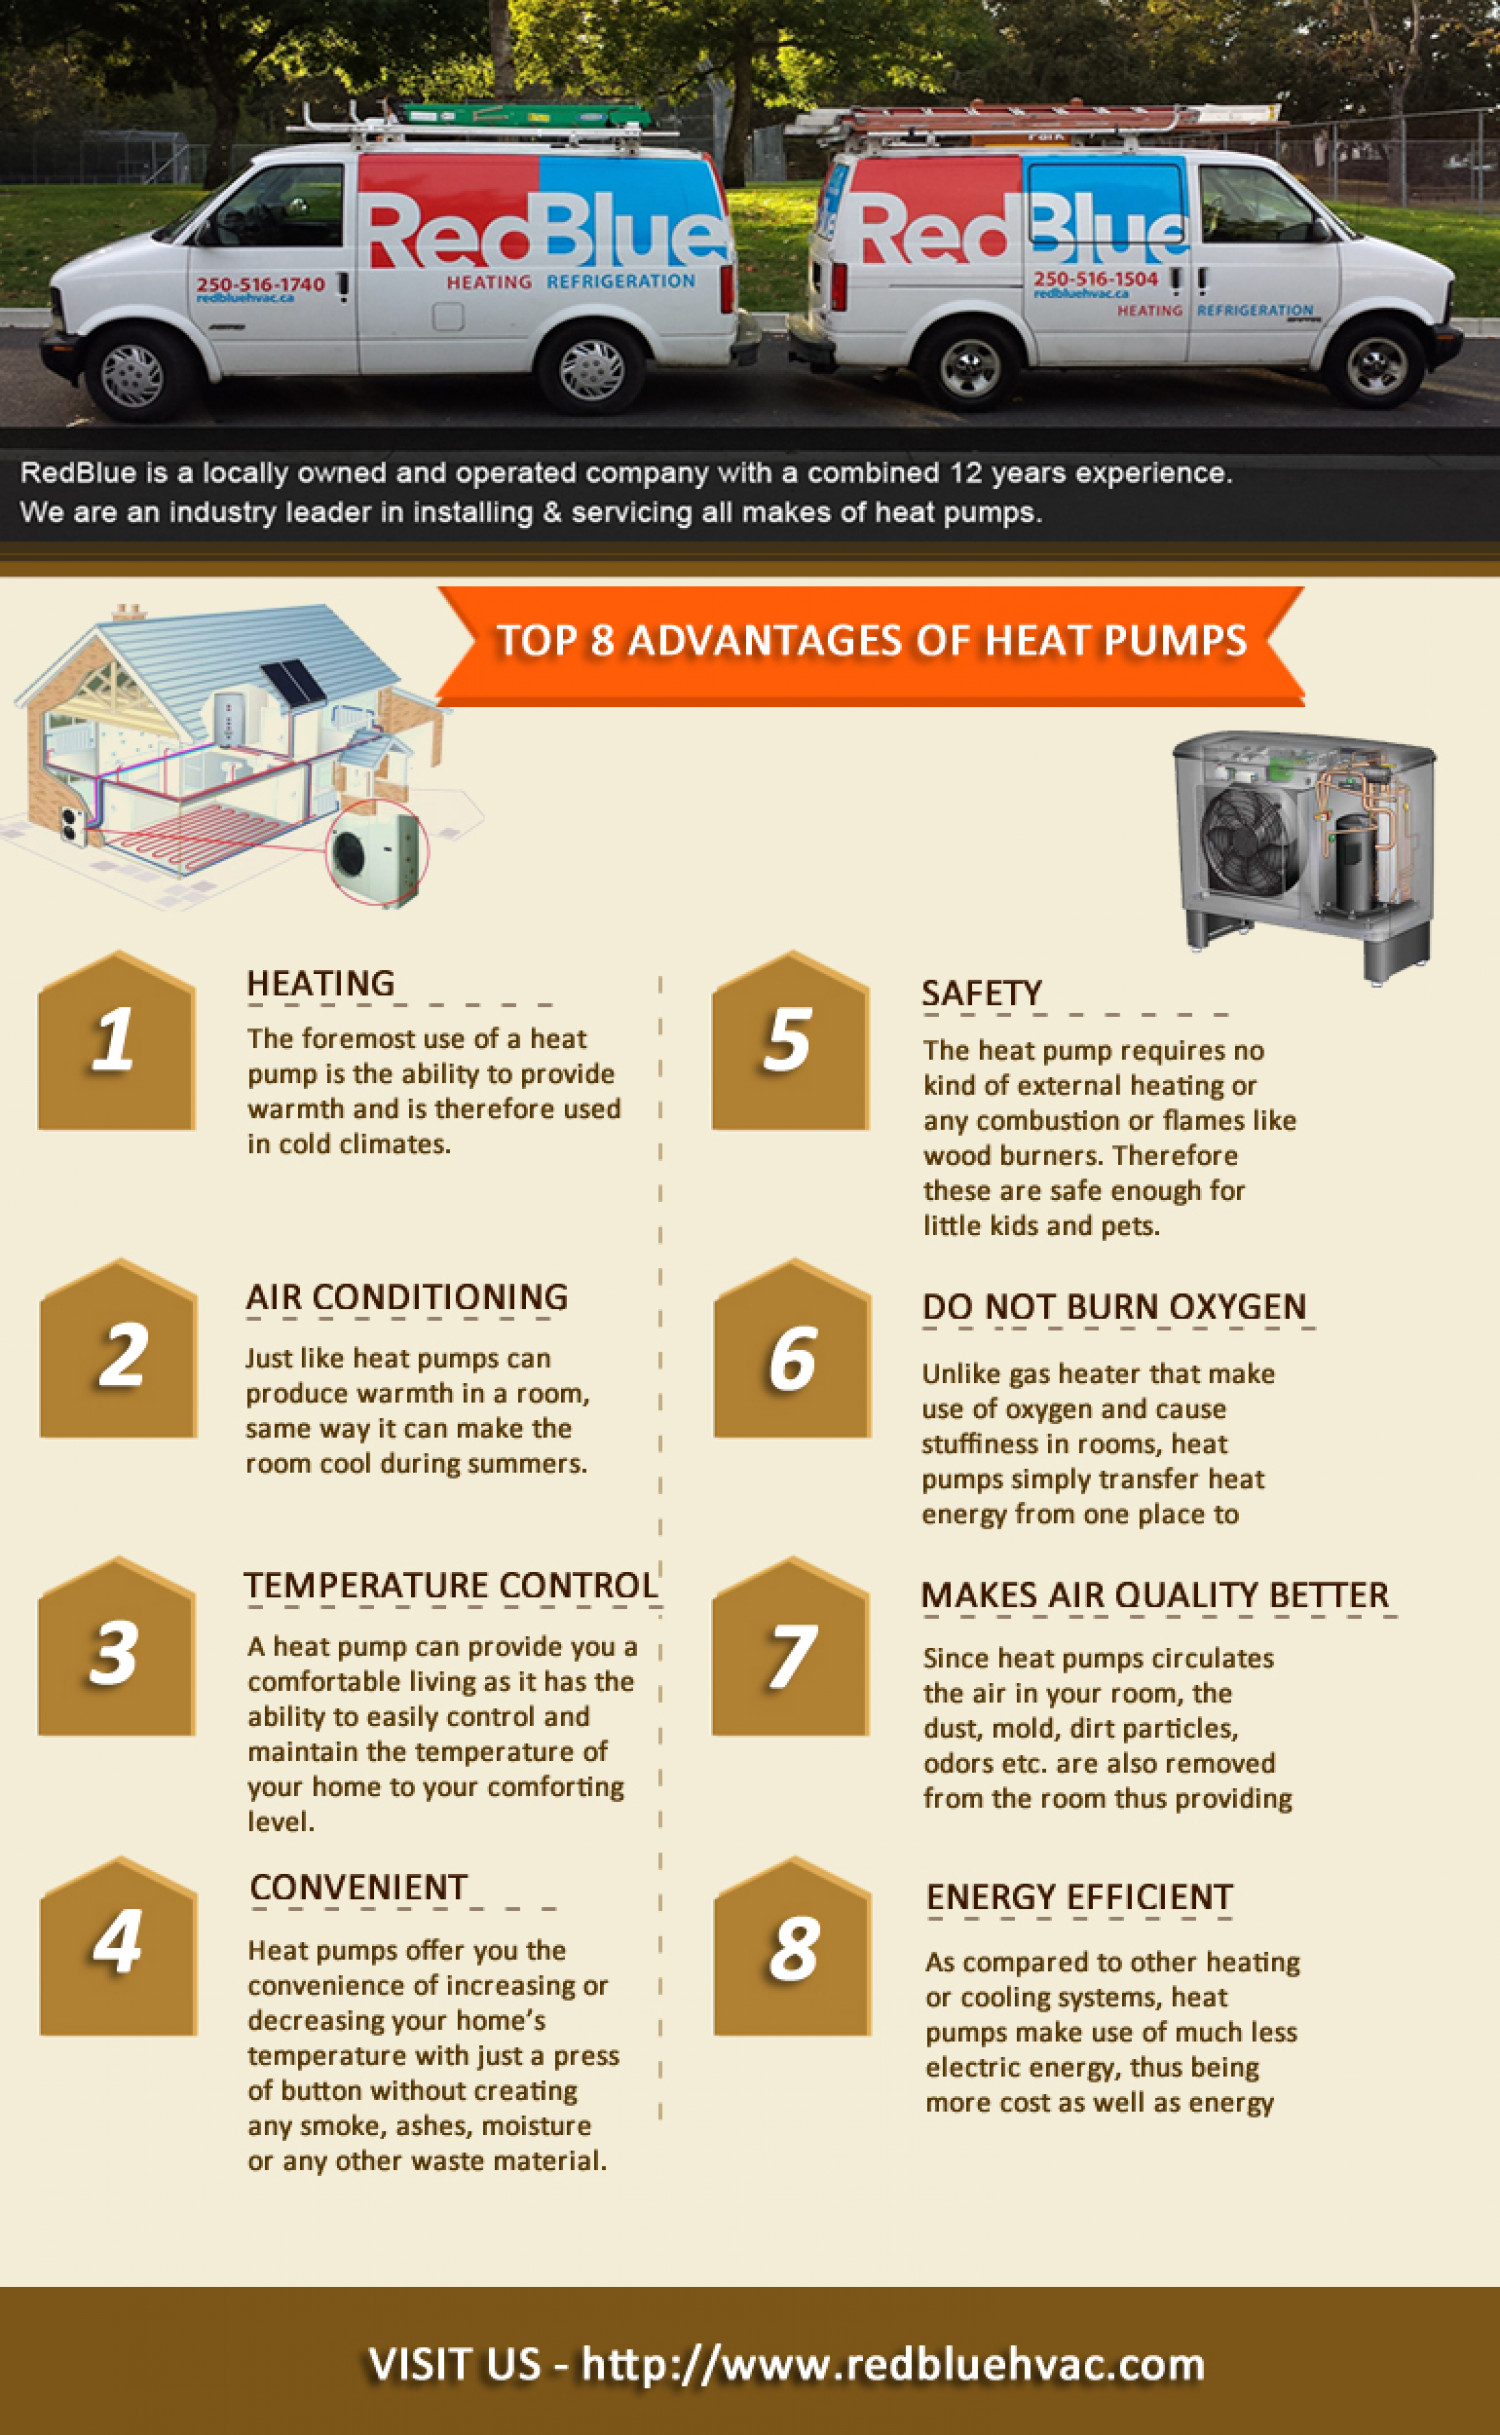 Top 8 Advantages of Heat Pumps Infographic